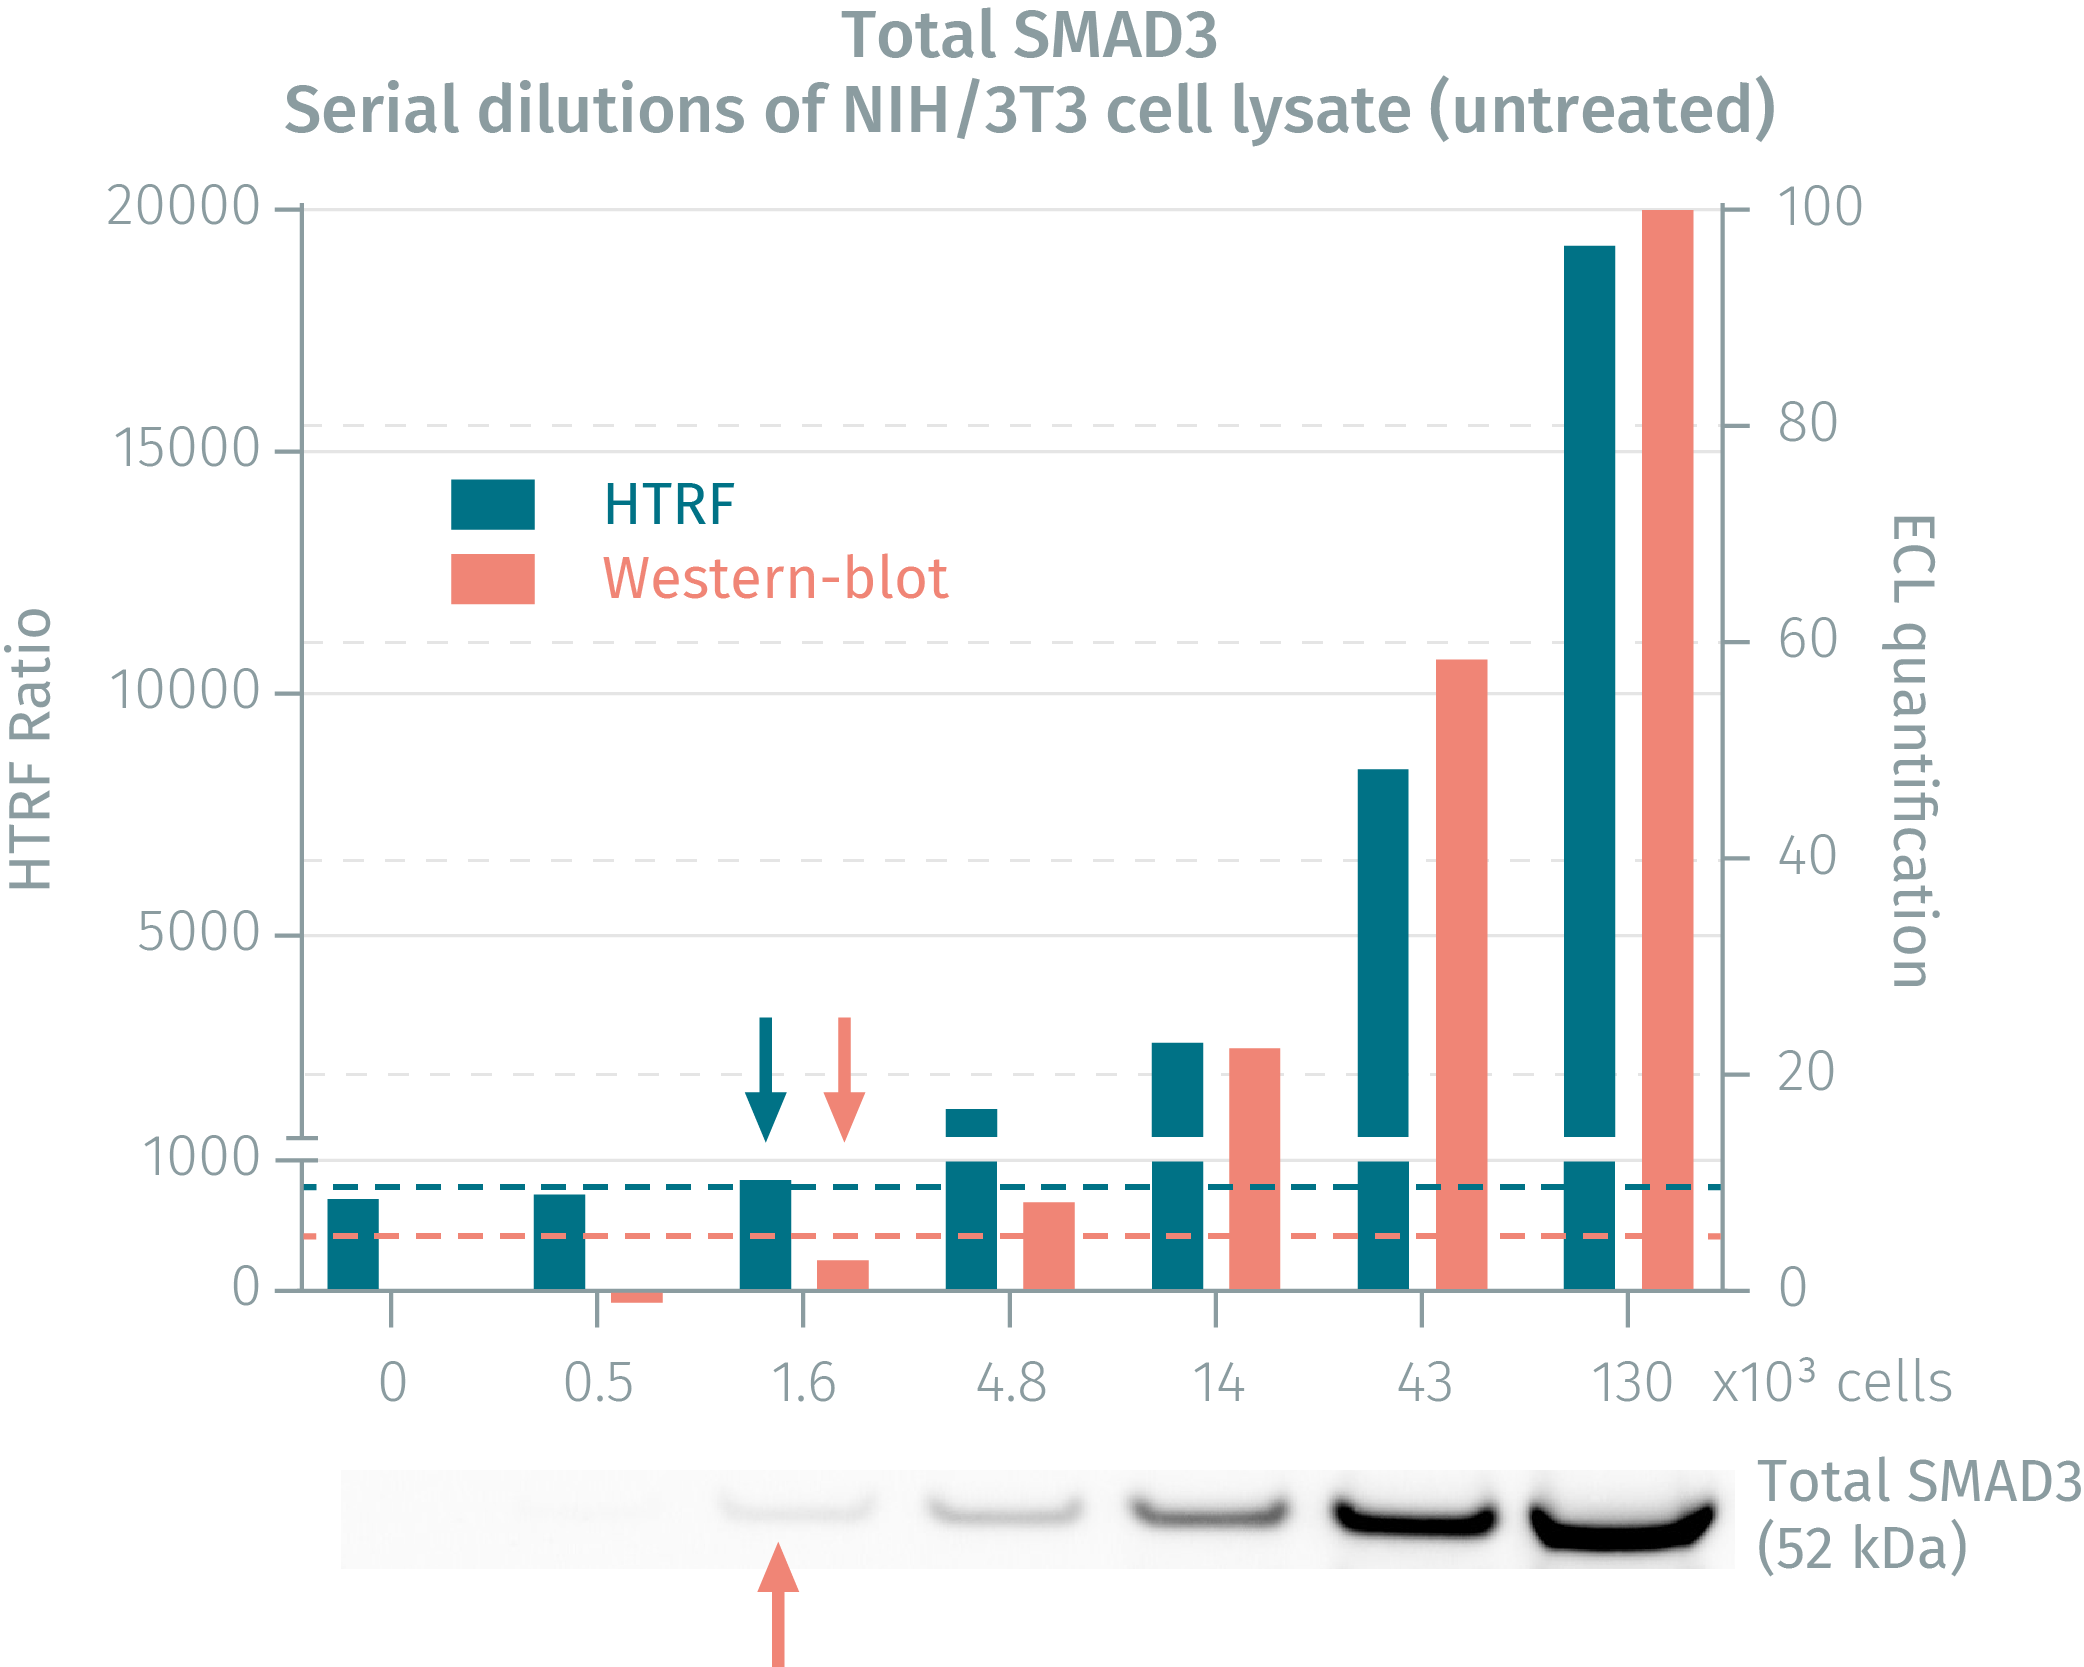 HTRF assay compared to Western Blot using total SMAD3 assay